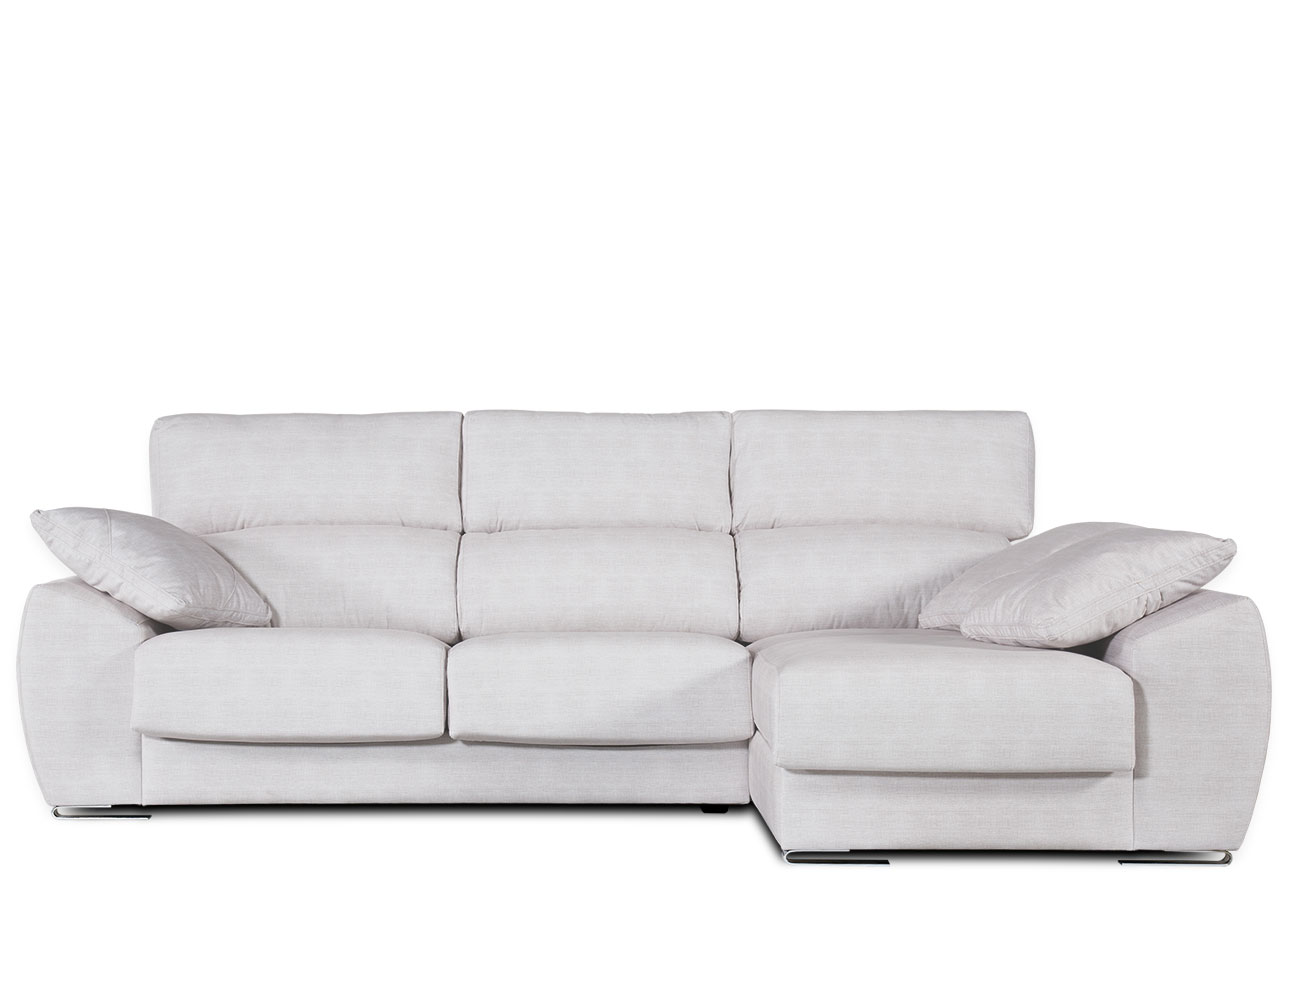 Sofa chaiselongue moderno blanco8